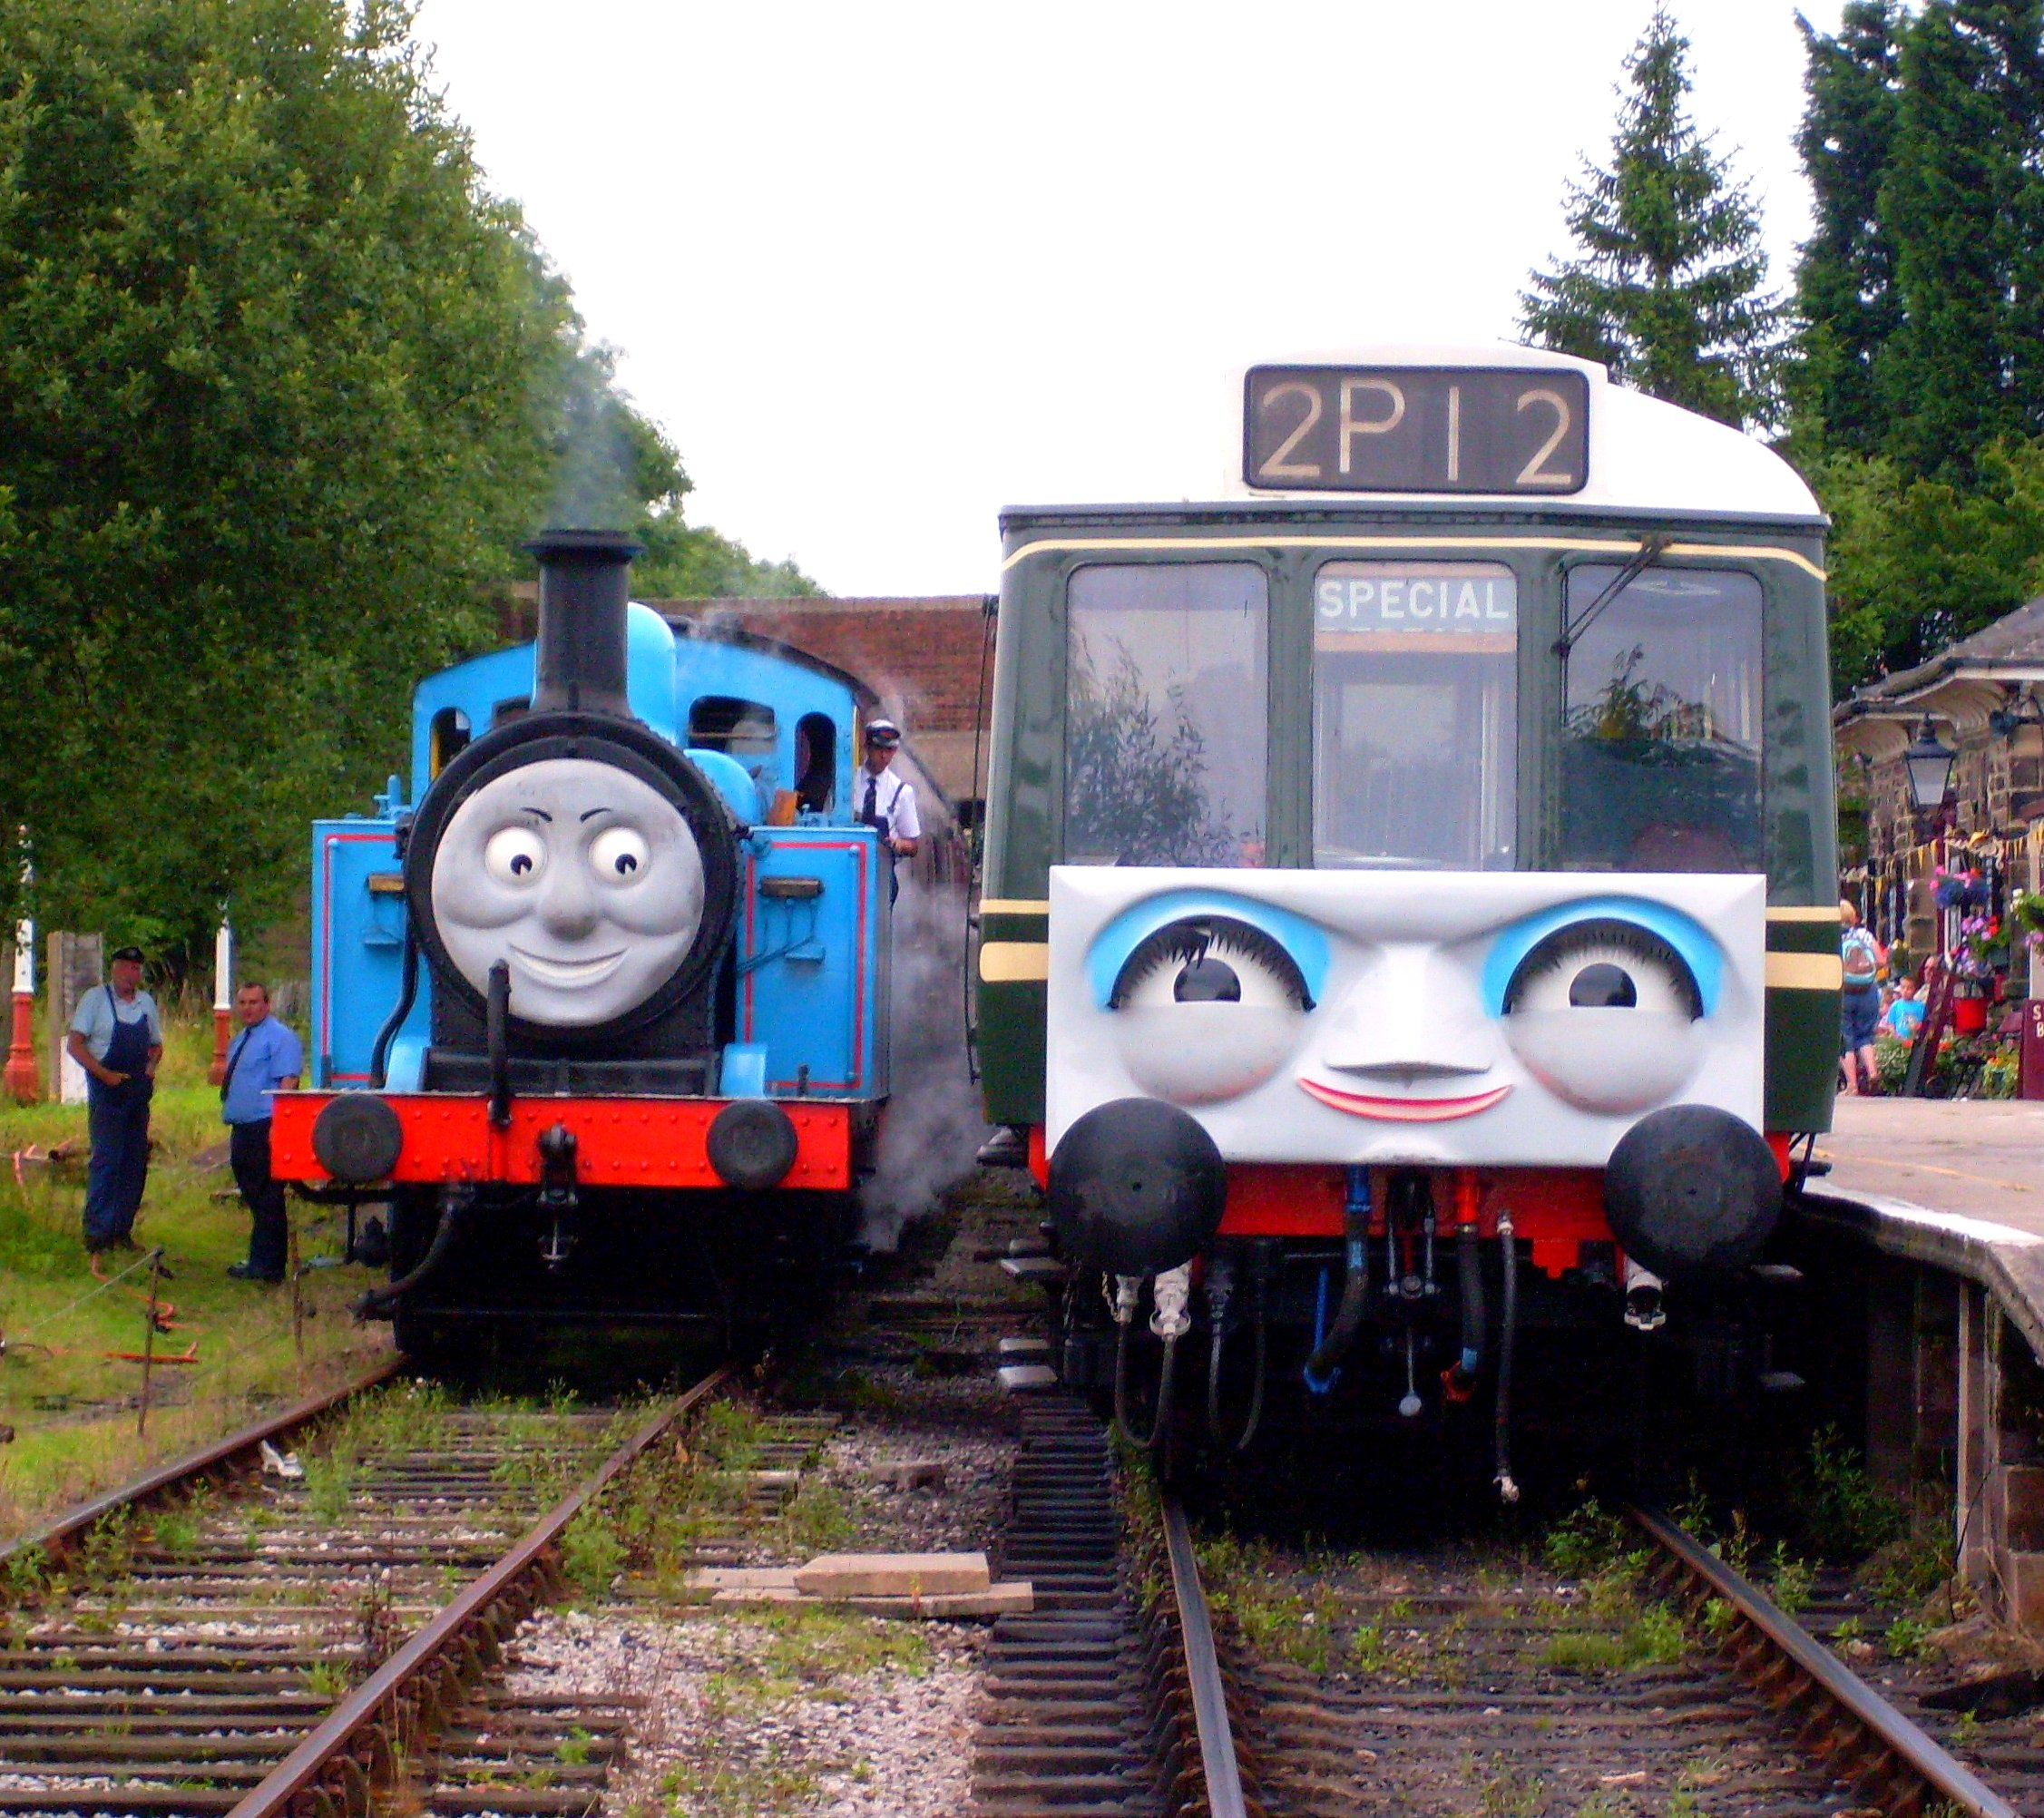 Book Excerpt: Thomas the Tank Engine - a Key to Inclusion